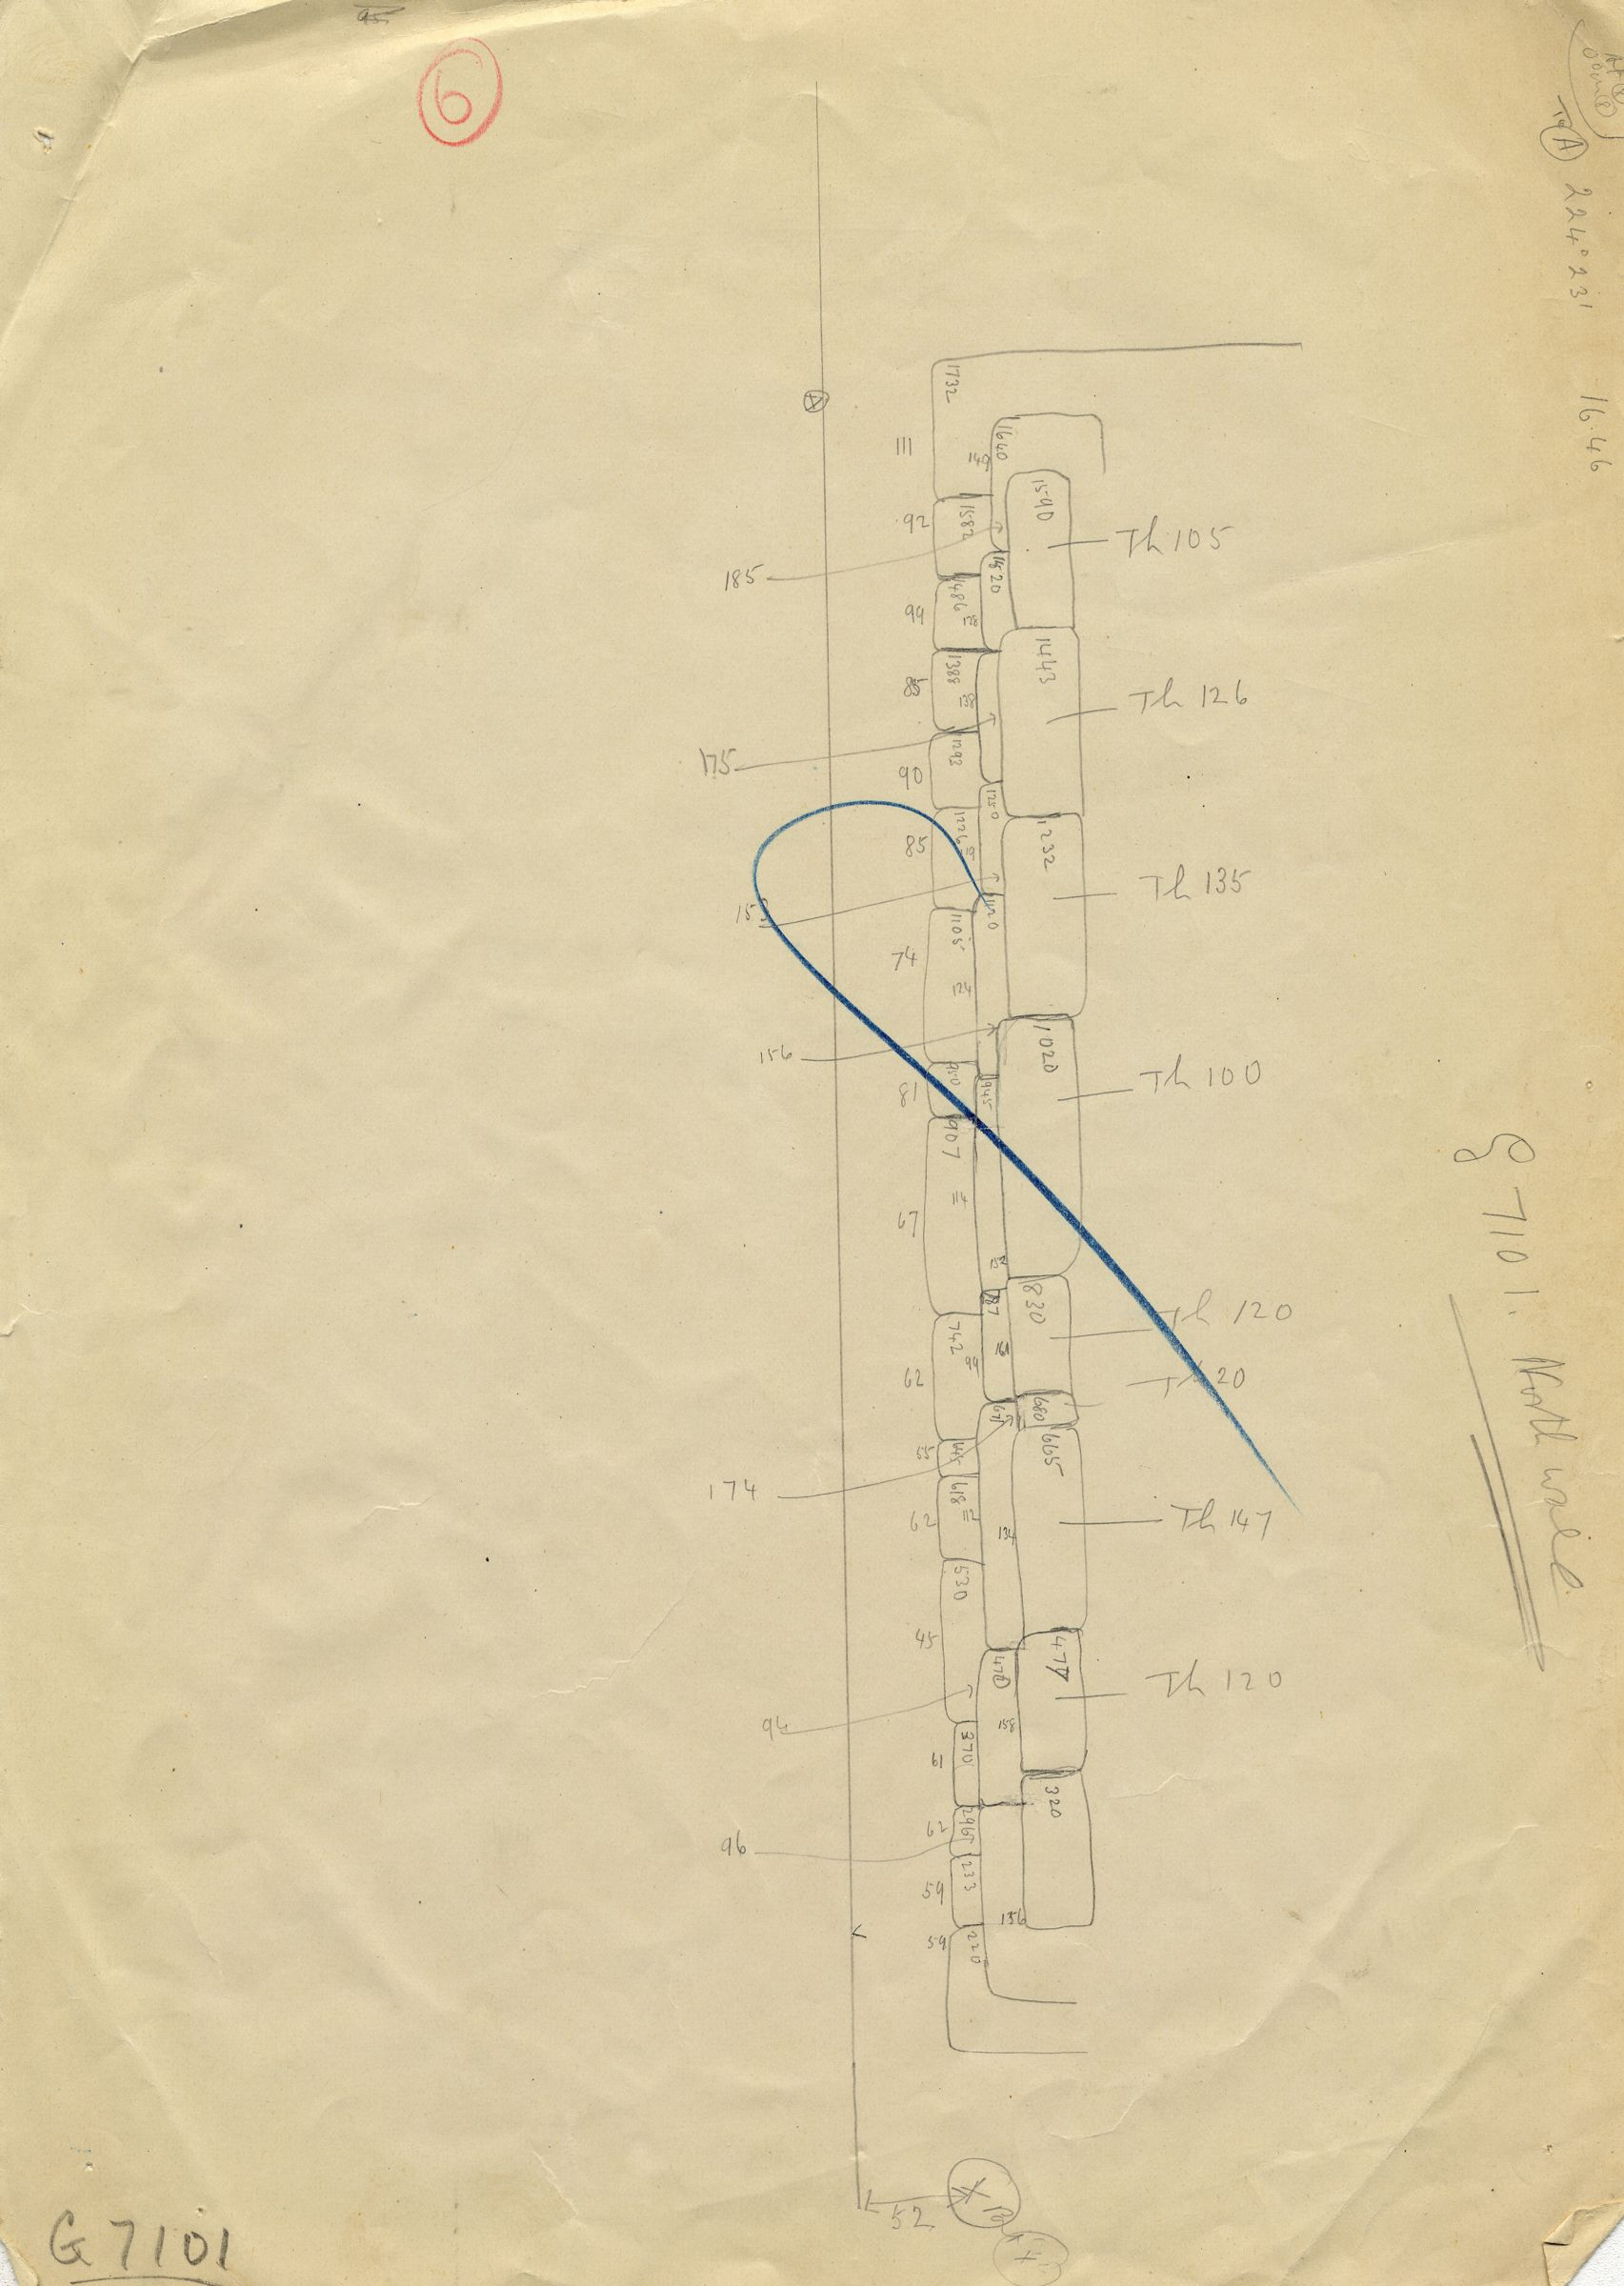 Maps and plans: G 7101